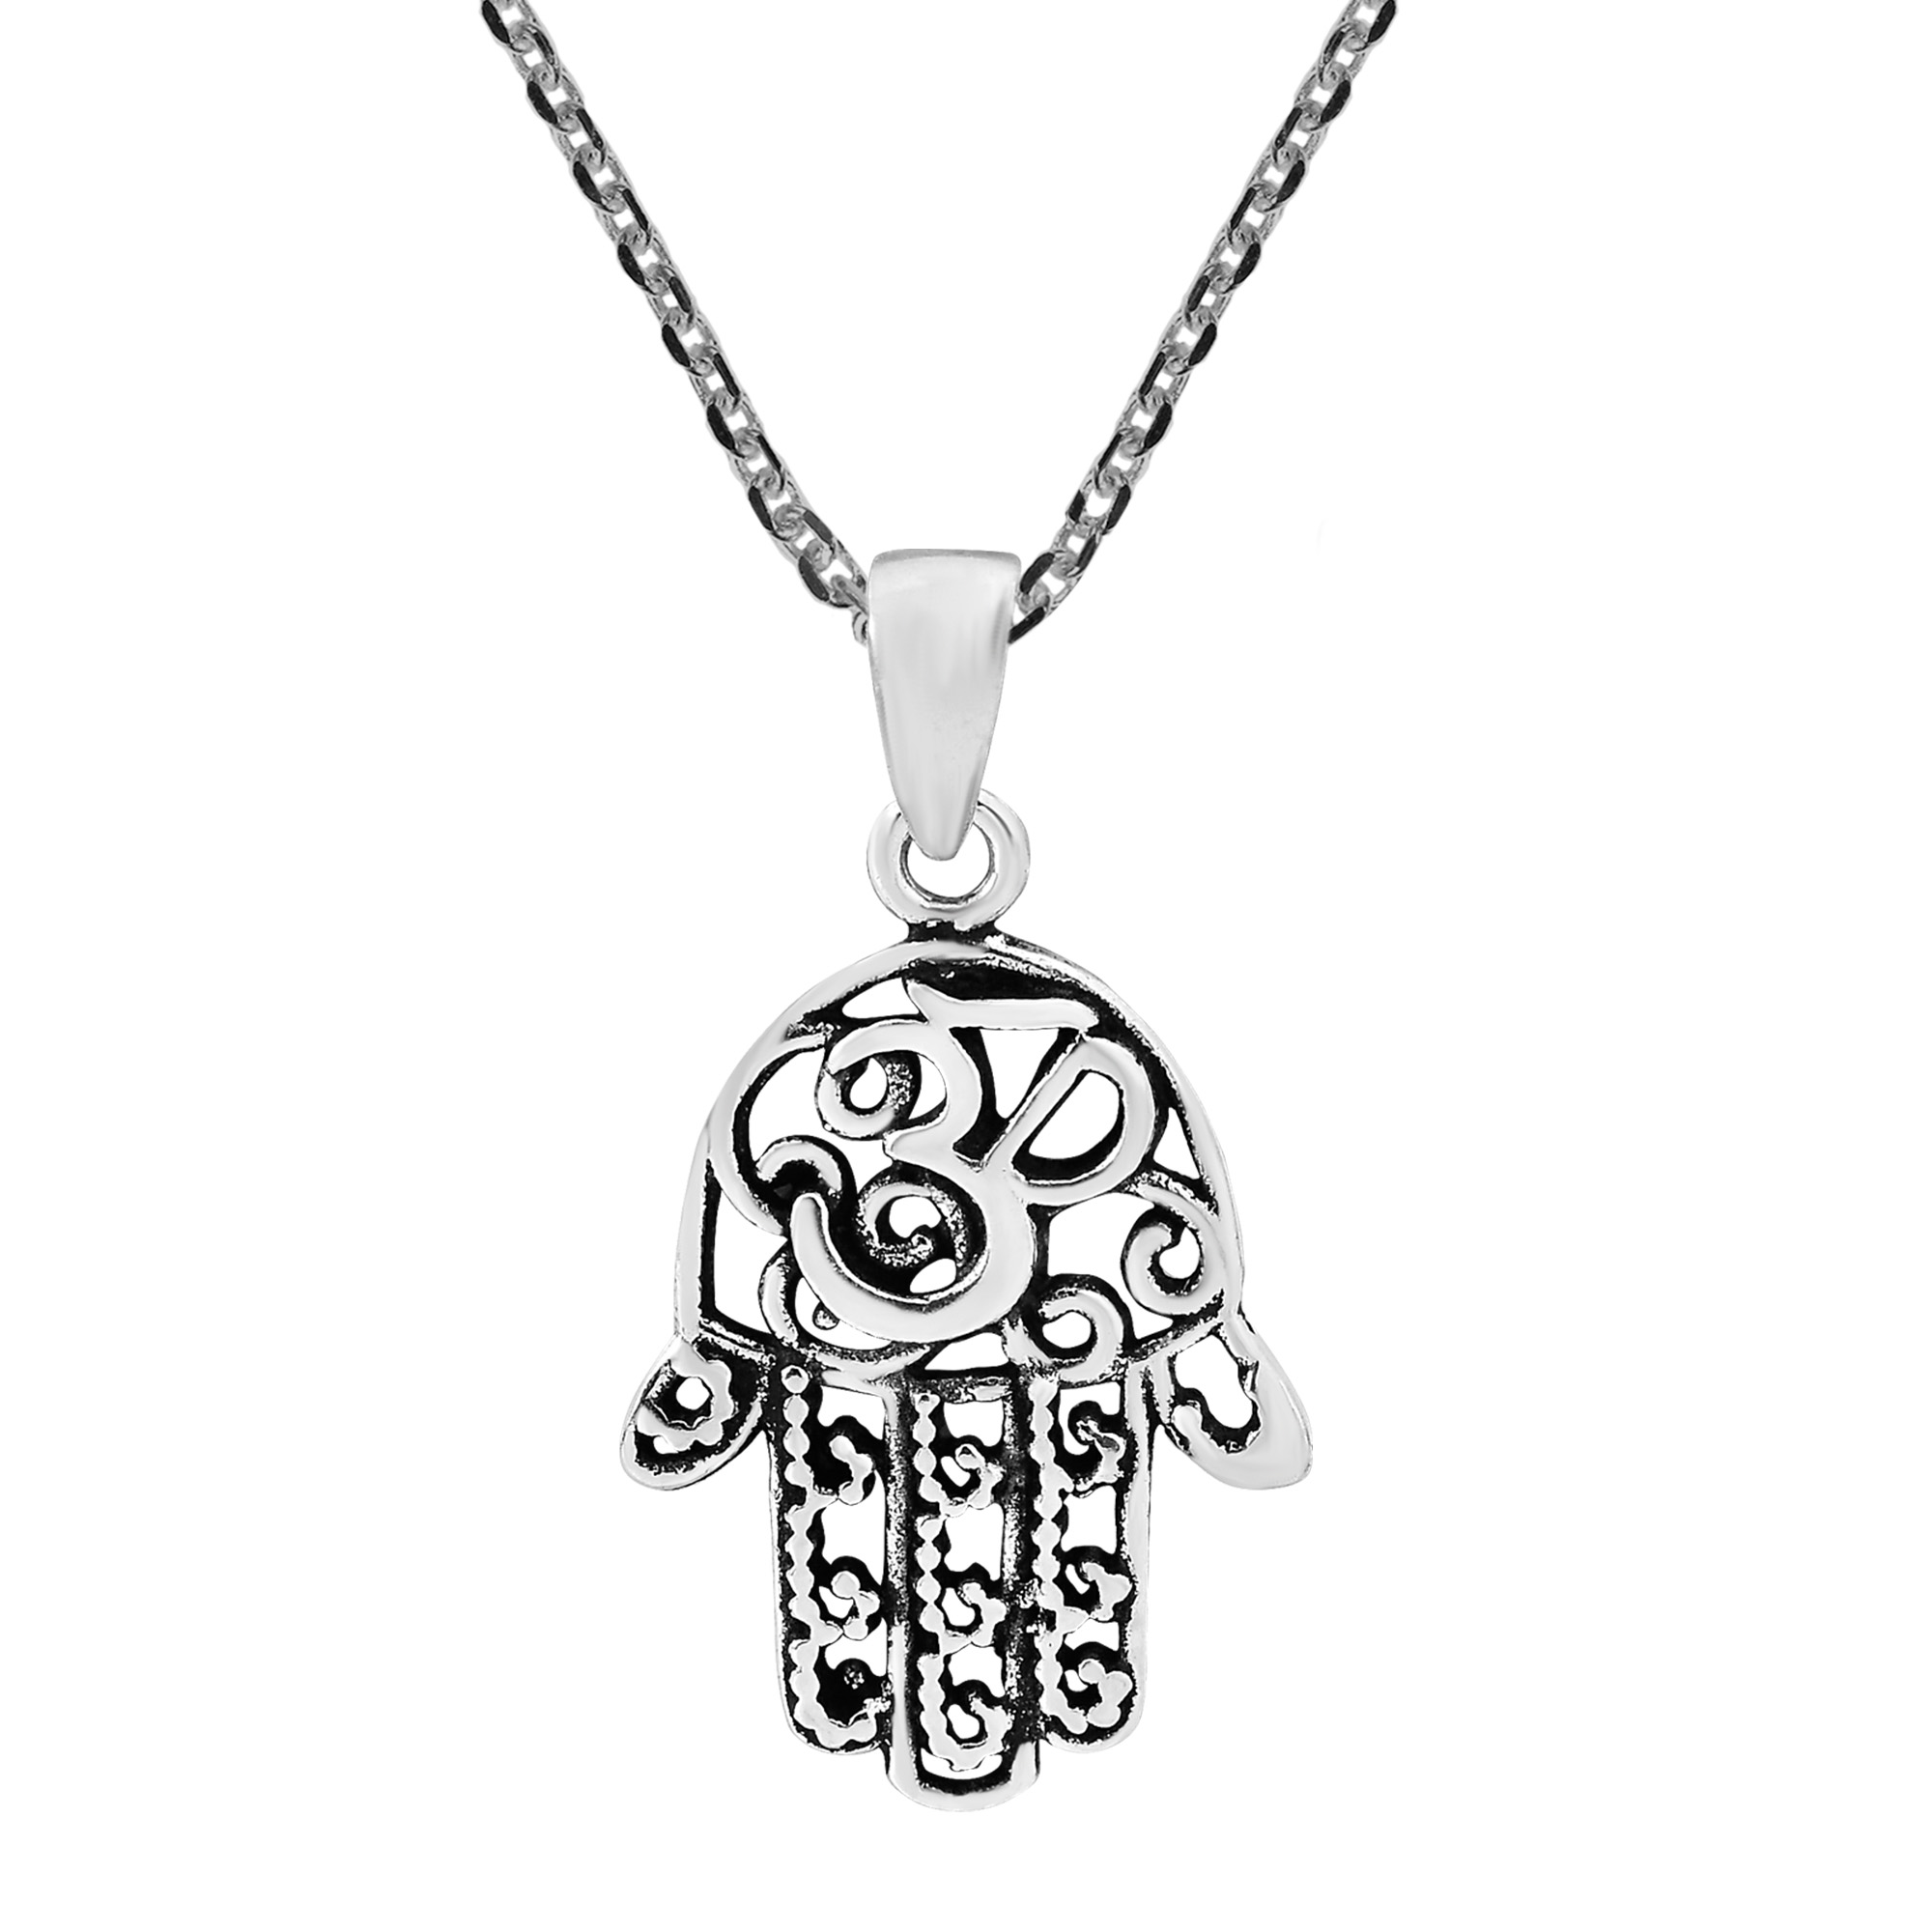 Hand symbol necklace gallery symbol and sign ideas hamsa hand with mystic om aum sterling silver necklace aeravida the historic hamsa hand is known buycottarizona